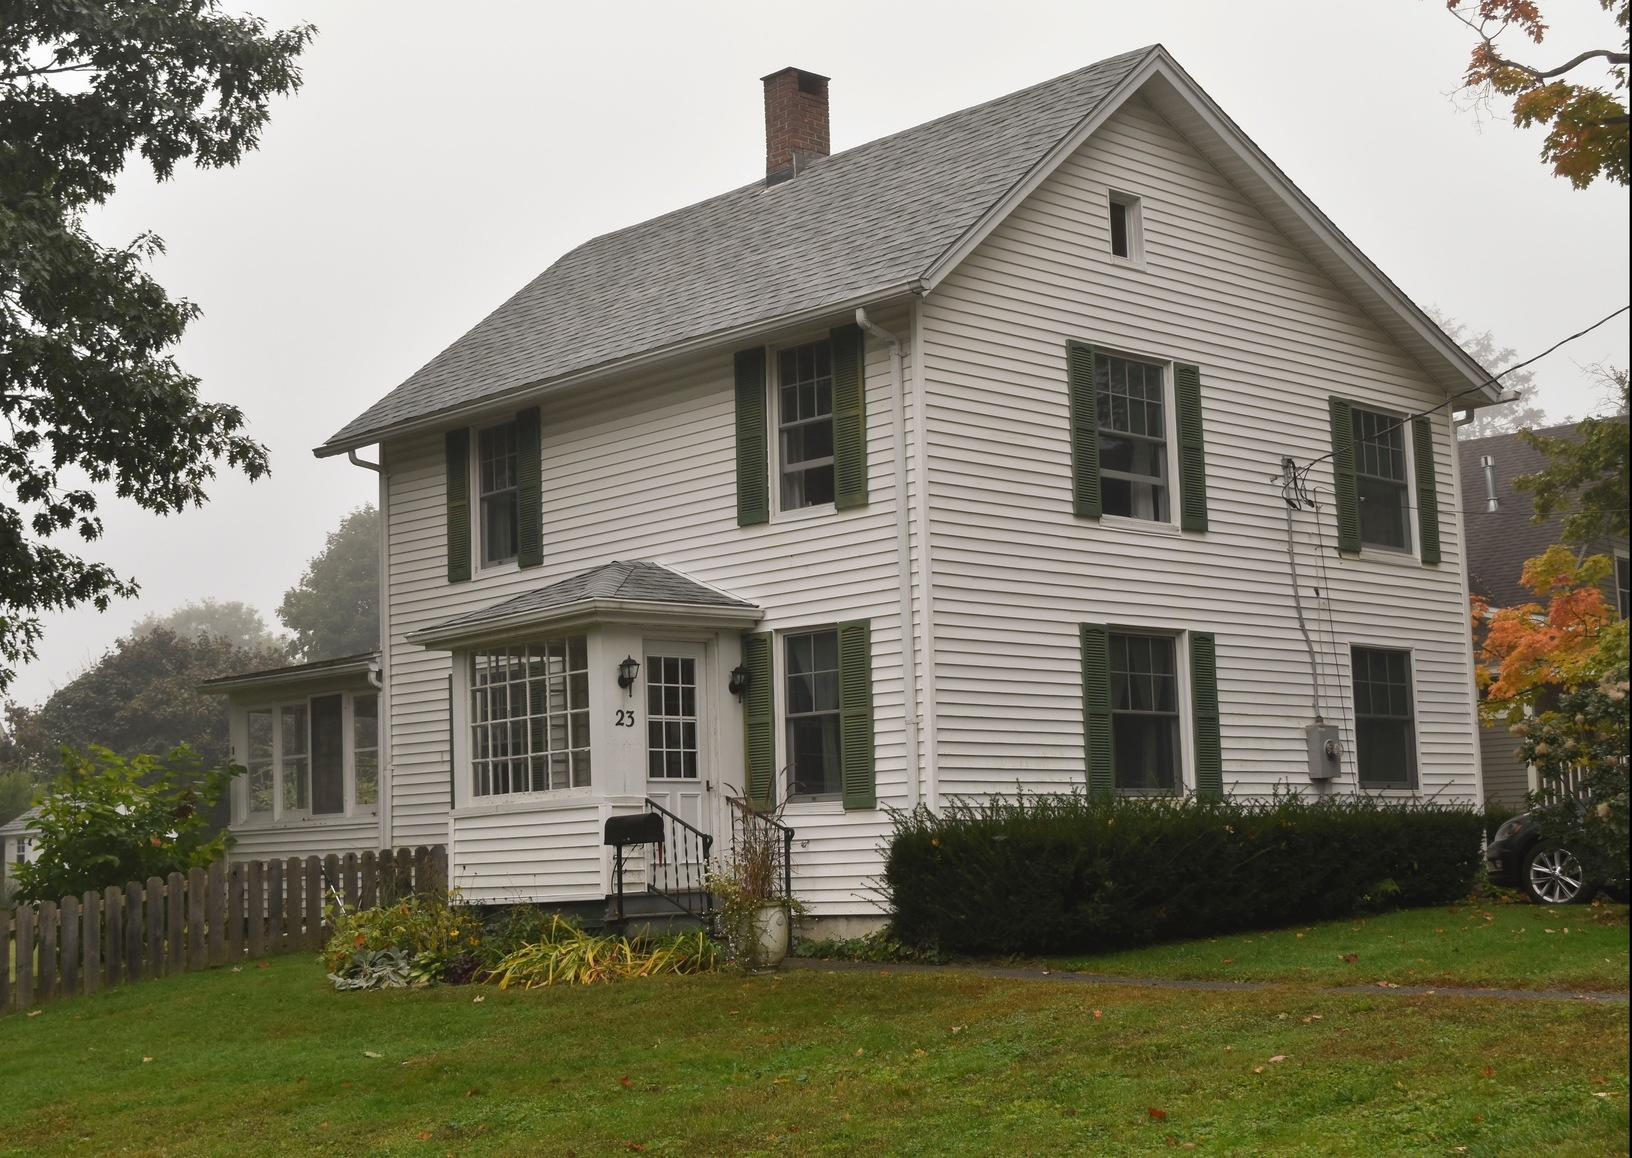 Great Barrington, MA Roof Replacement IKO Dynasty Frostone Grey Shingles - After Photo